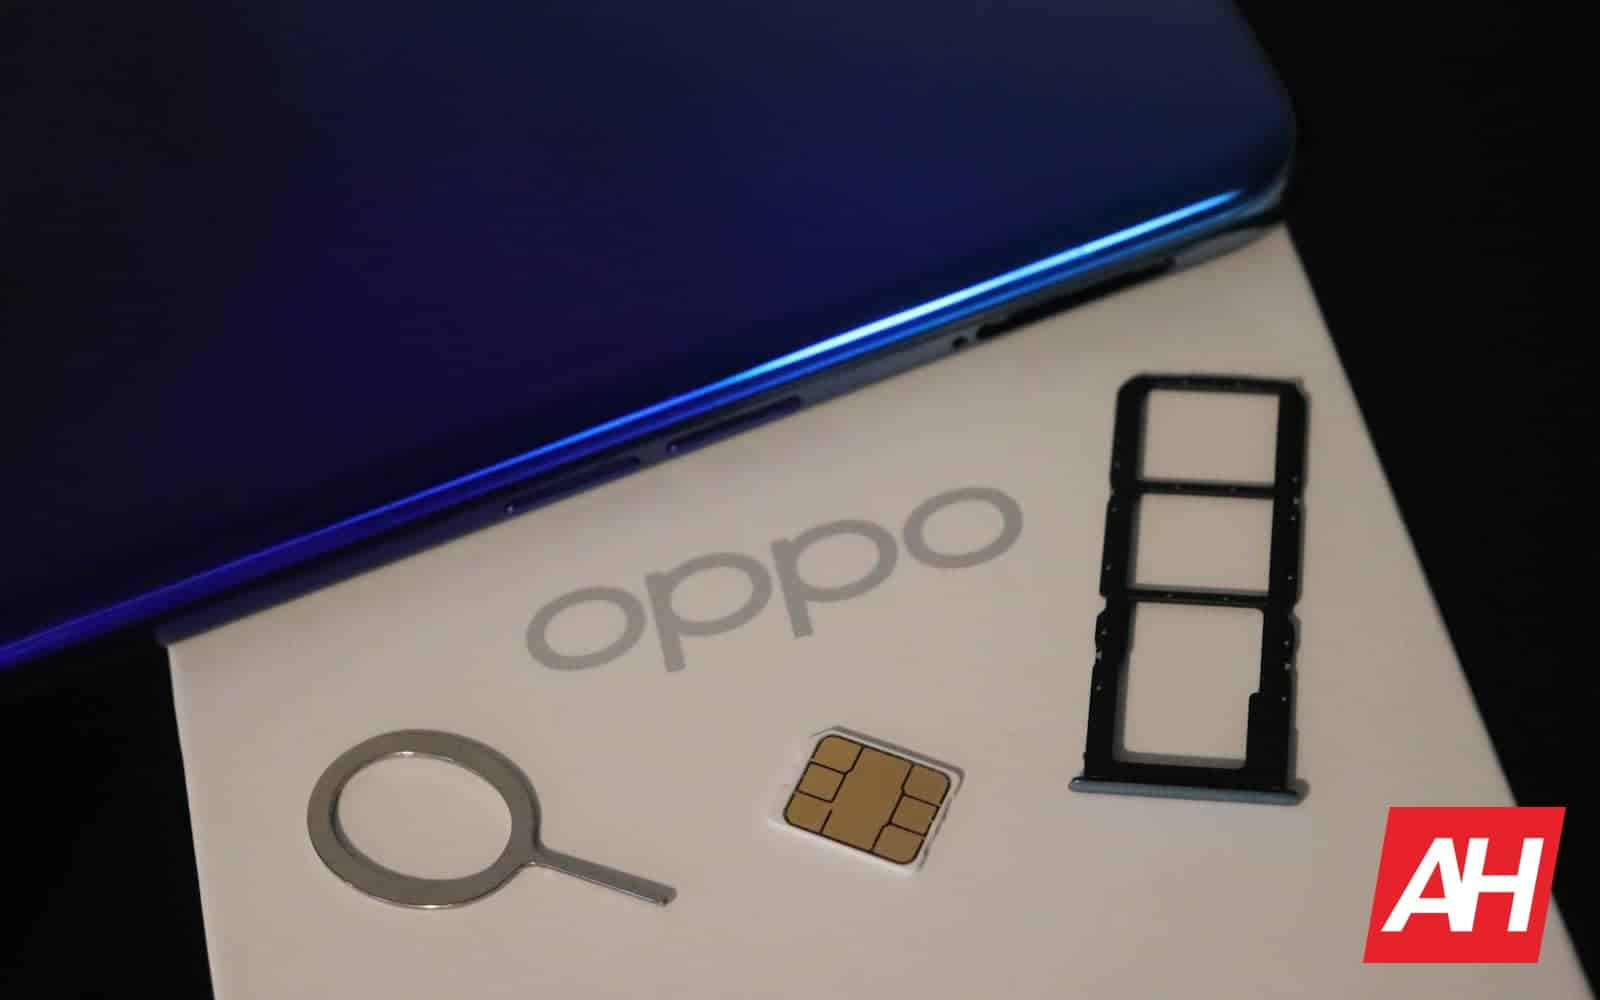 09 OPPO Reno3 Pro Connectivity Review